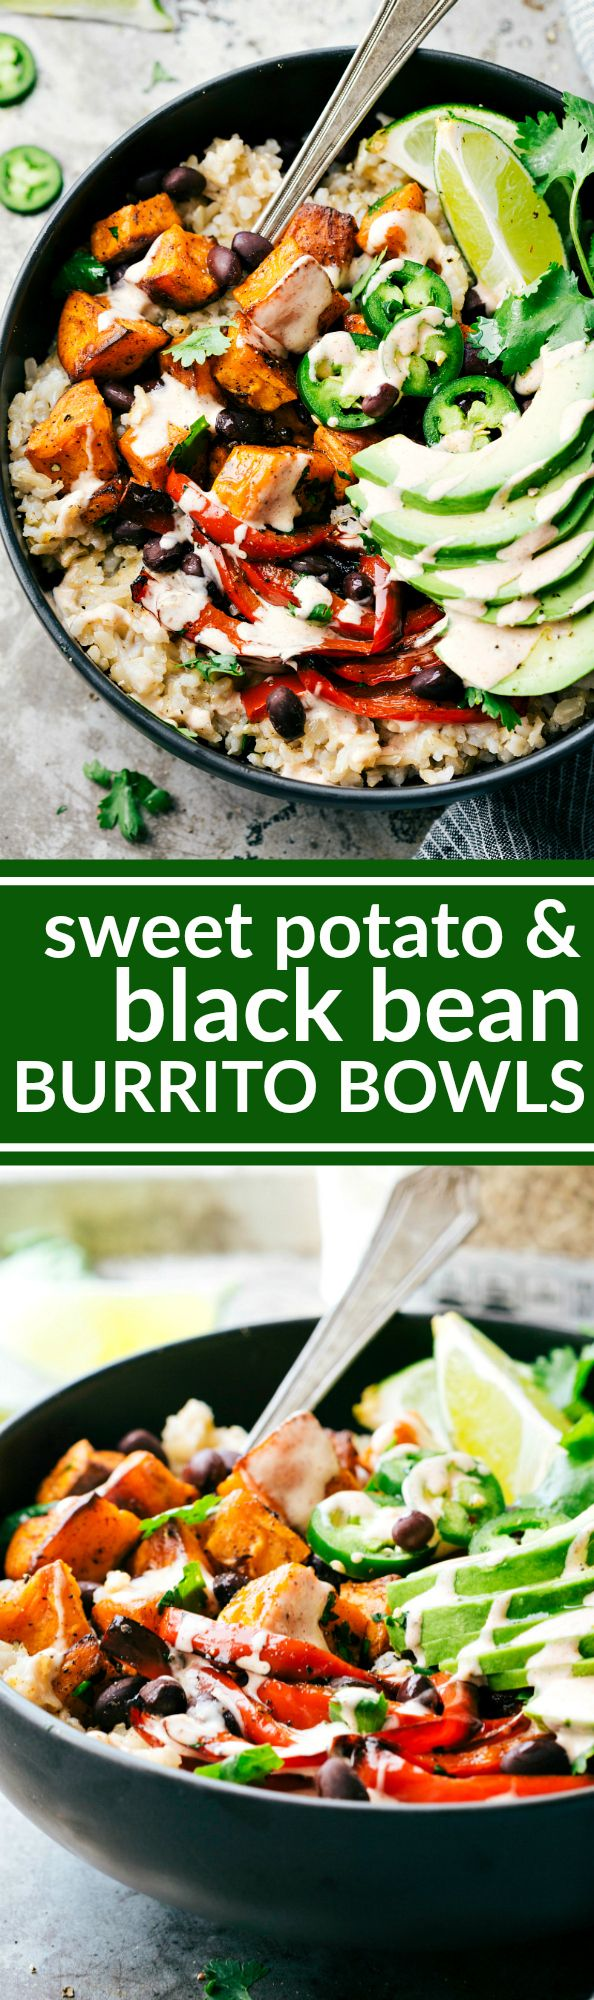 SWEET POTATO BURRITO BOWLS! A delicious and simple to make veggie black bean burrito bowls -- brown rice, seasoned & roasted sweet potatoes + bell peppers, black beans, and avocado with the most incredible chipotle lime sauce.